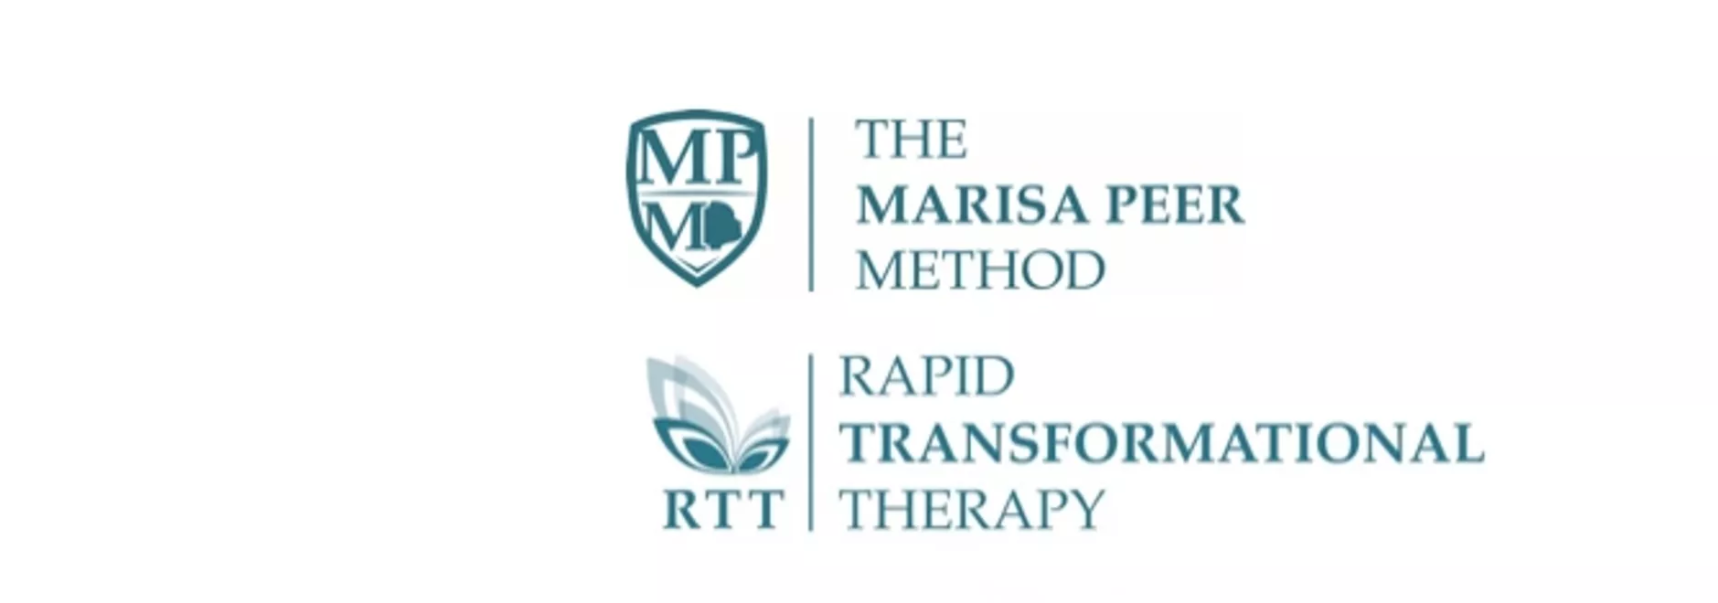 Certifications:    ** fully certified Rapid Transformational Therapist at the Marisa Peer Method school    ** fully certified Hypnotherapist at the Marisa Peer Method school    I receive Continuing Professional Development through the Marisa Peer School, and pursue for-credit continuing education on various common issues.    I maintain Professional Liability insurance.